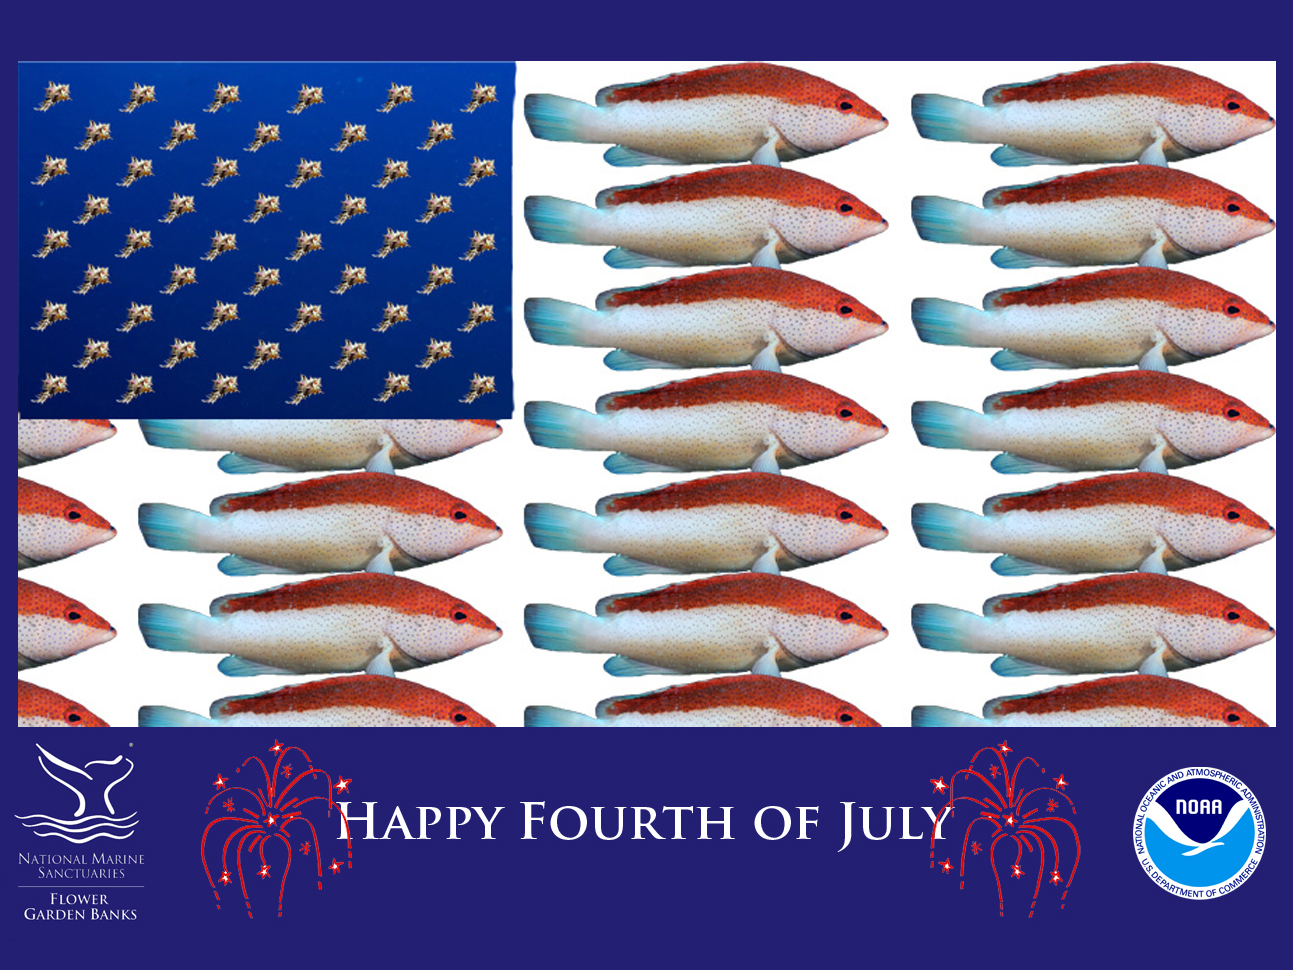 A United States flag image made using red and white fish for the stripes and murex shells for the stars.